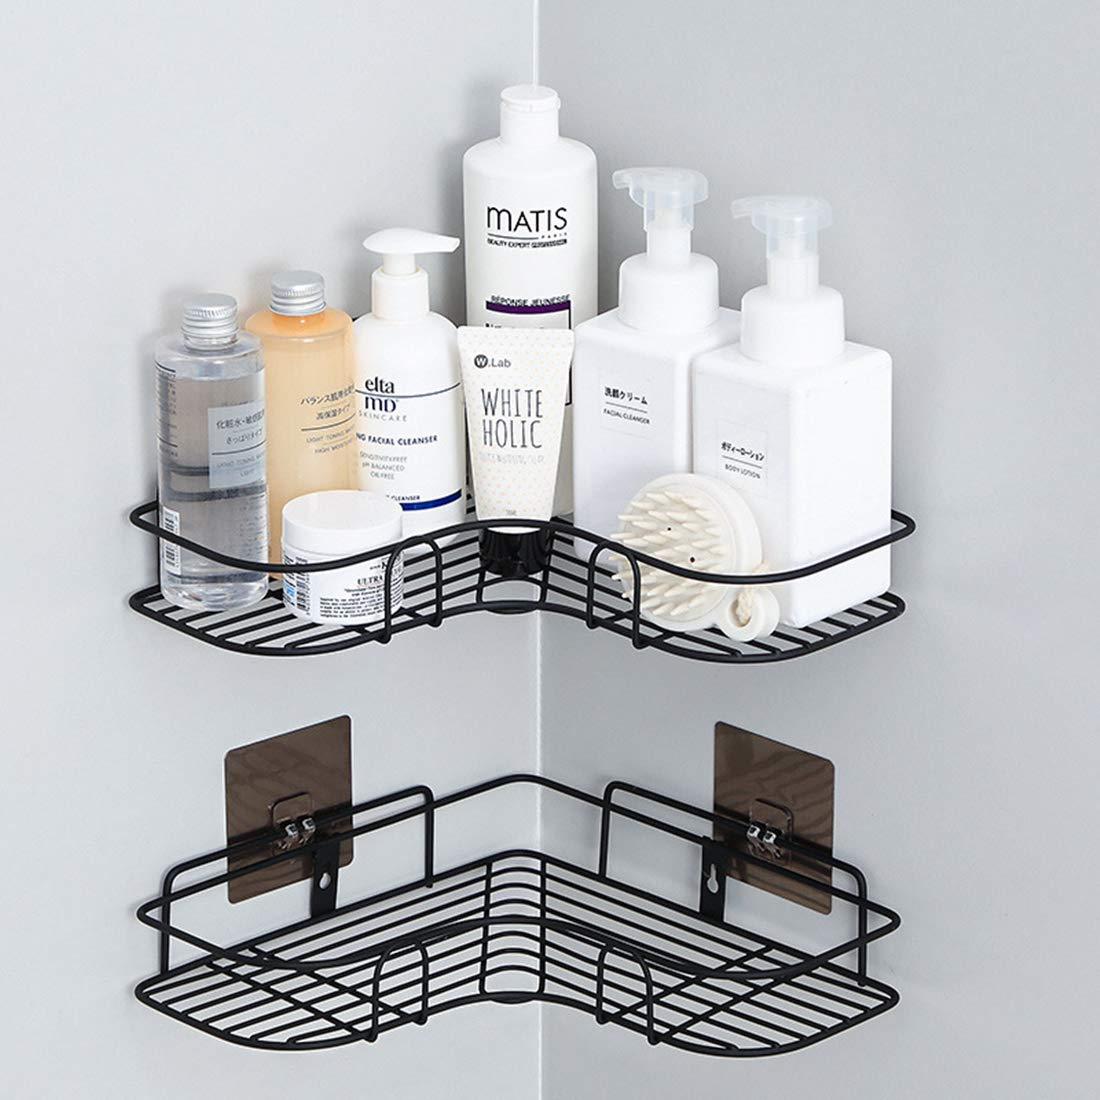 IALUKU Bathroom Shower Shelf, Set of 2, Adhesive Metal Wall Mounted Storage Organized Rack for Shower Caddy,Triangle Basket No Drilling, Design for Bathroom Bedroom Living Room and Kitchen by IALUKU